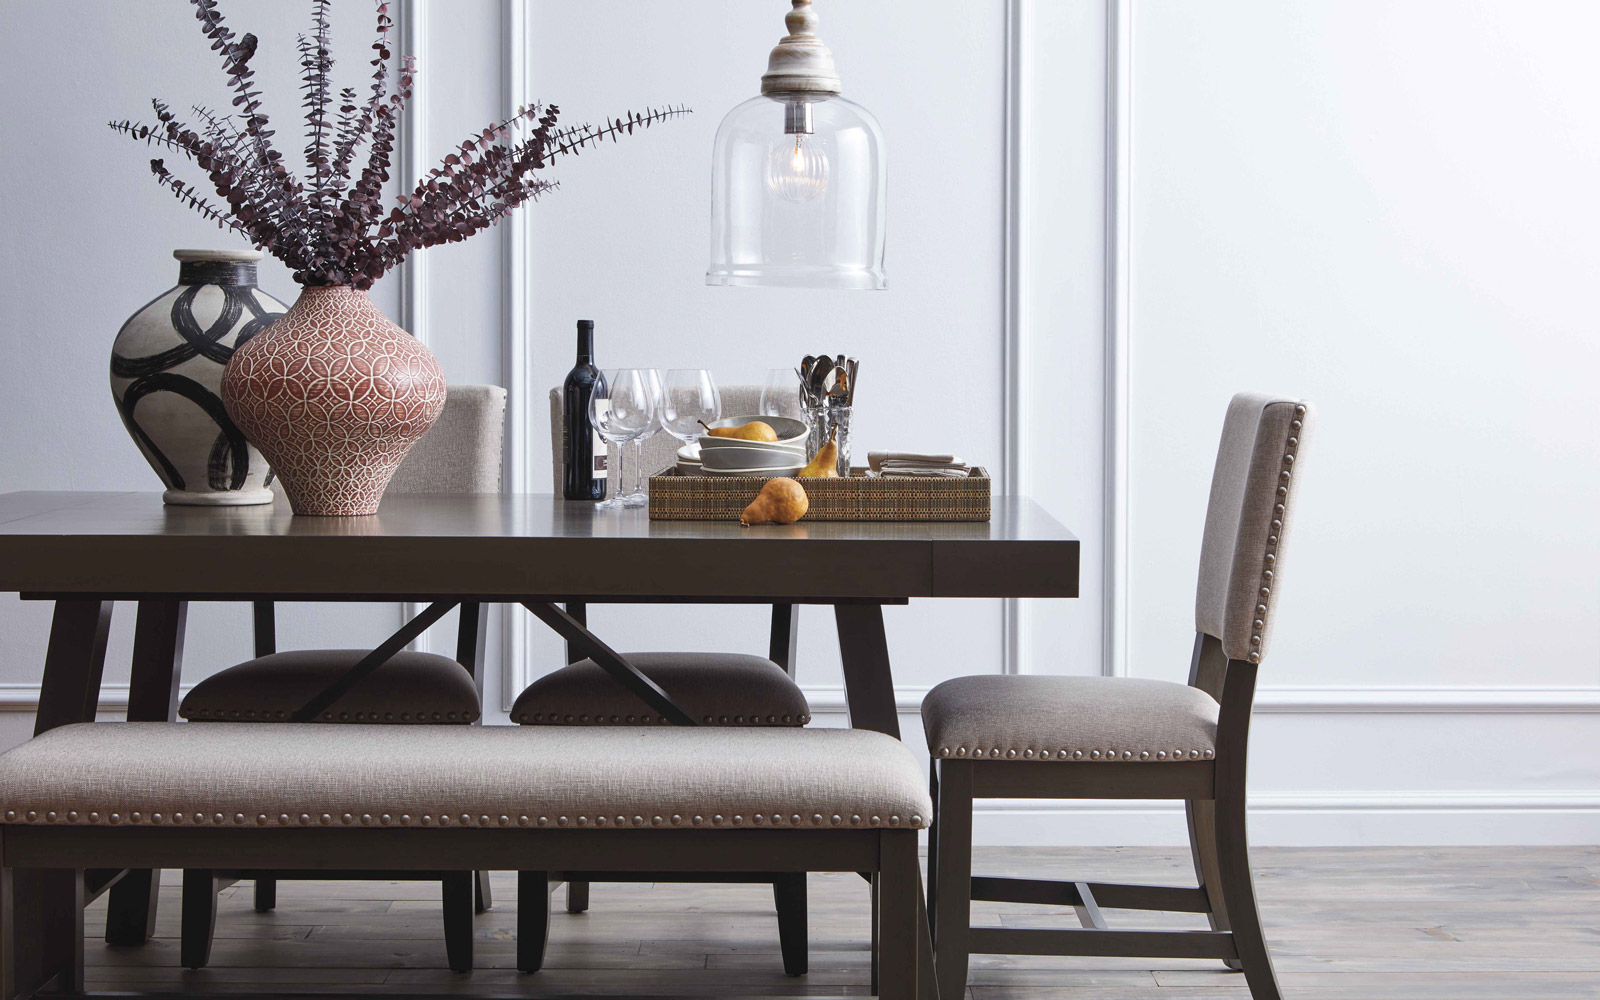 homesense-dining-room-HOMESENSE0717.jpg